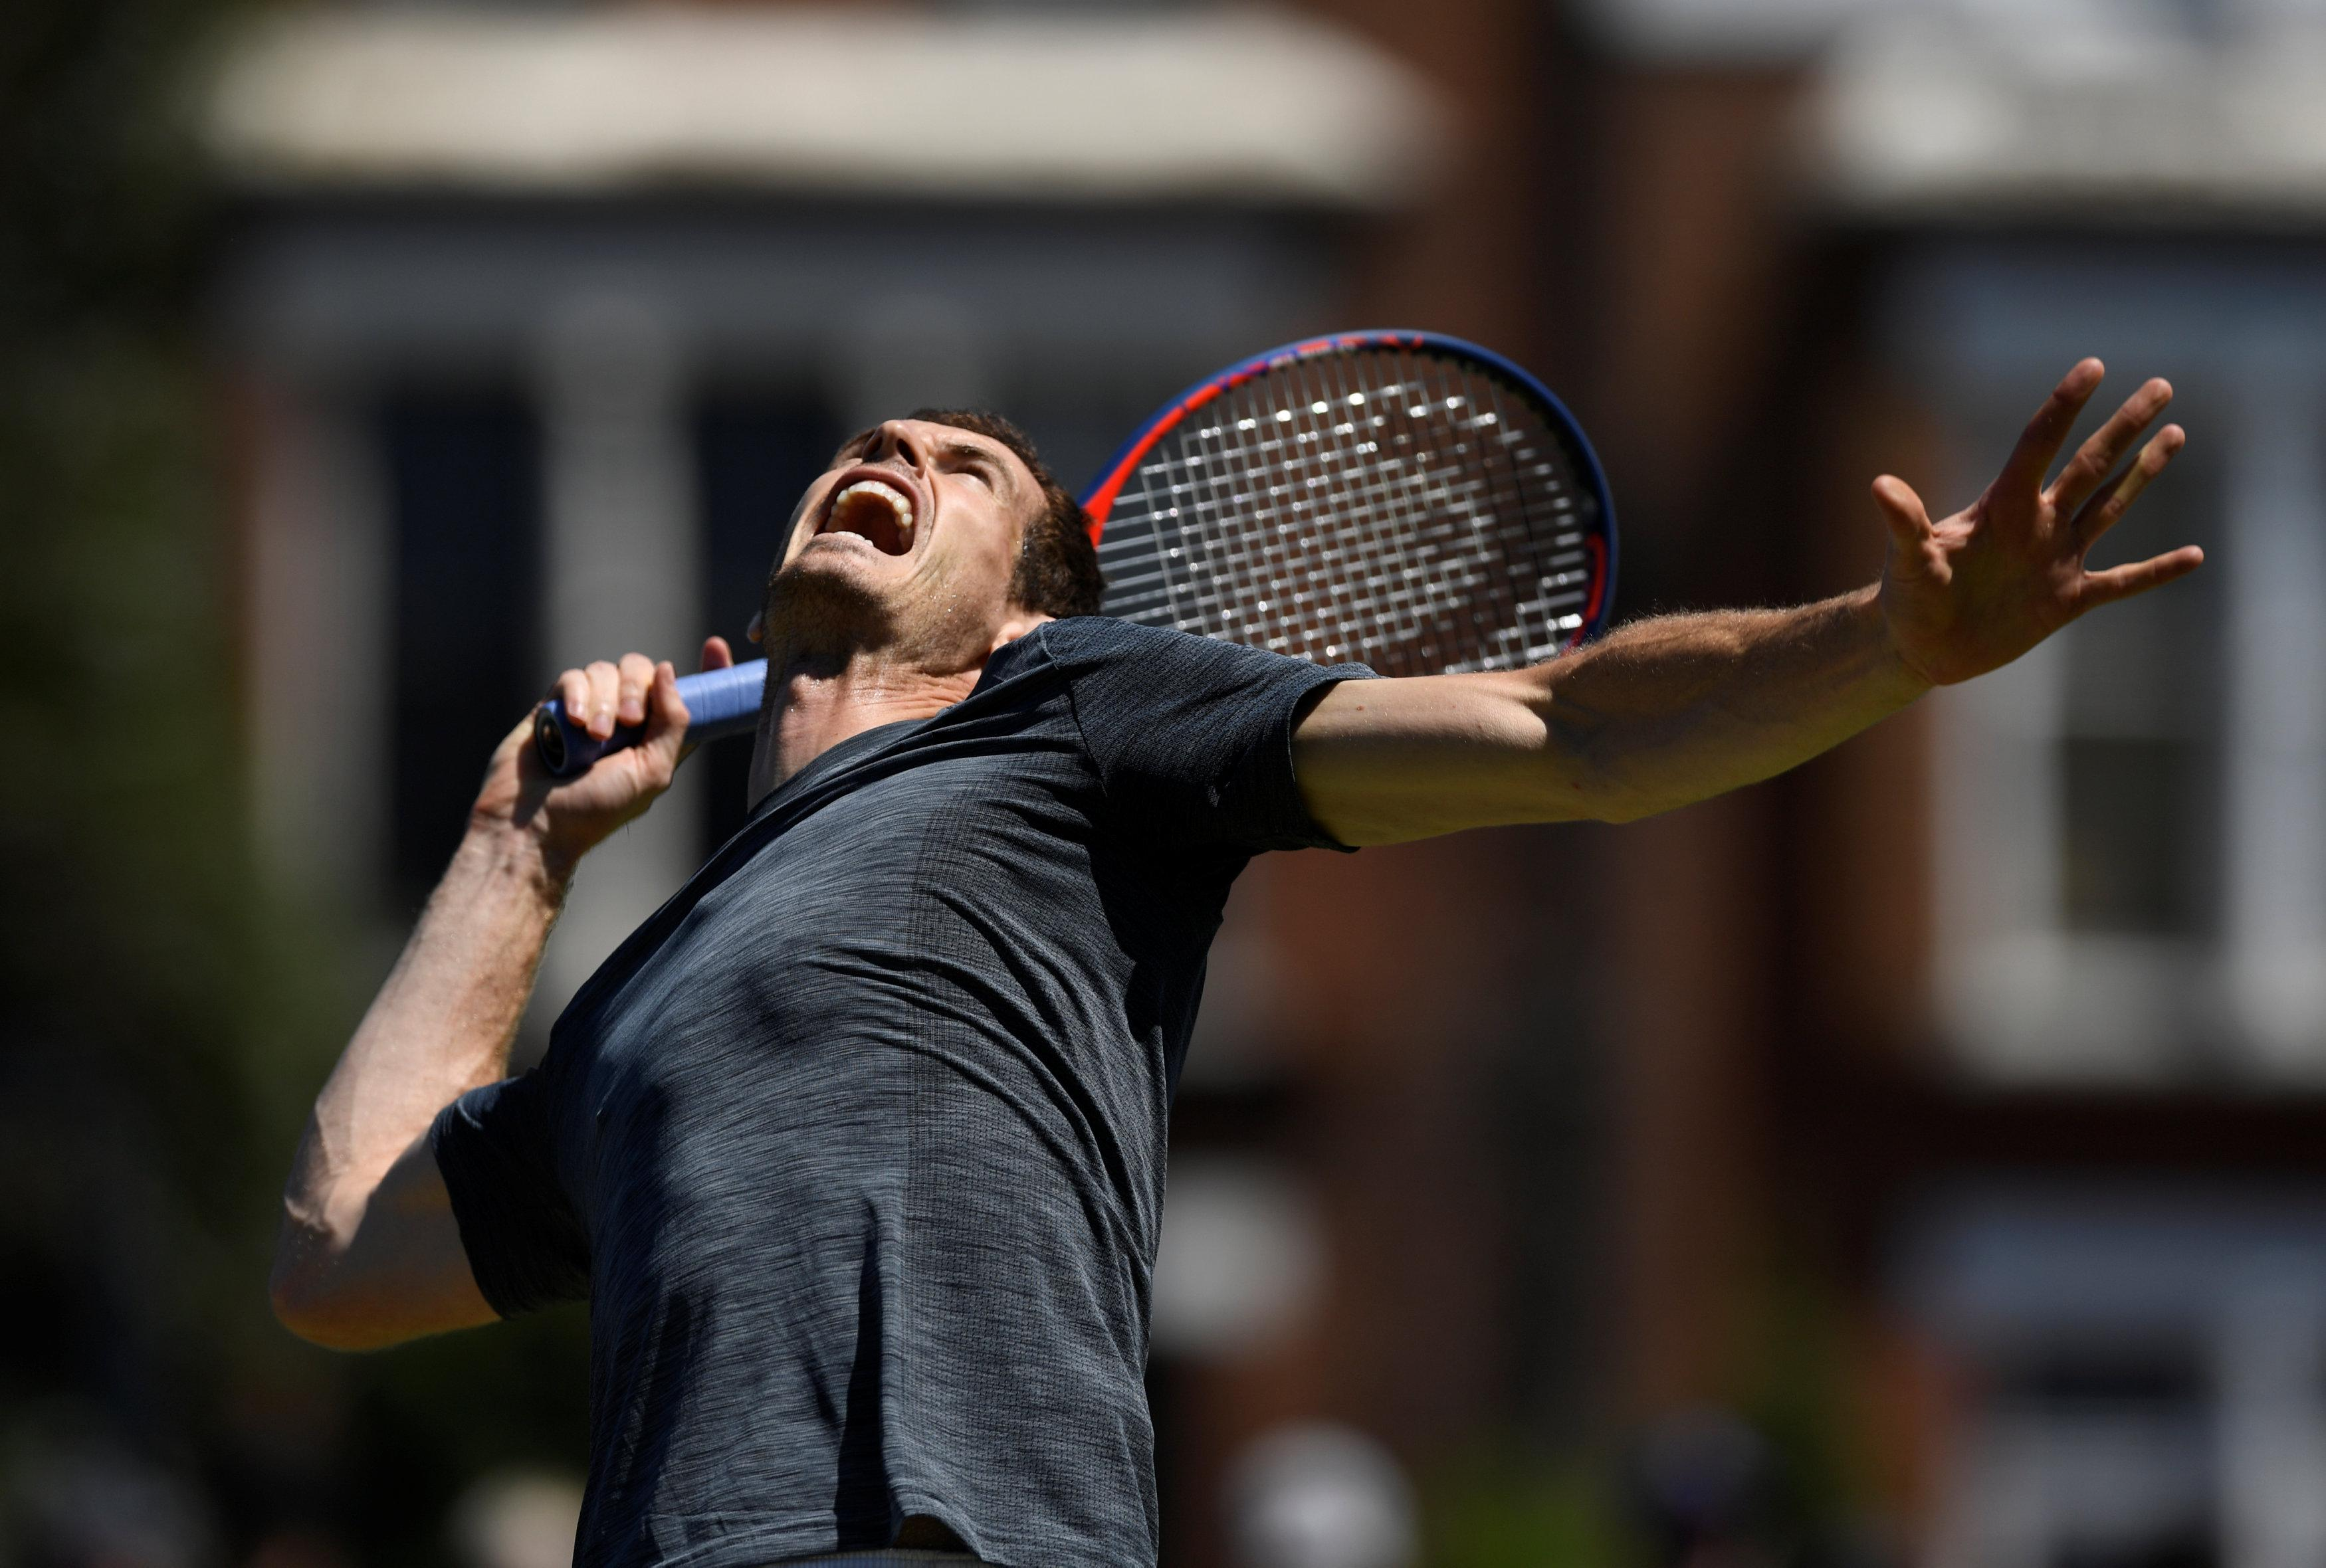 Andy Murray will take on Nick Kyrgios in the first-round at Queen's